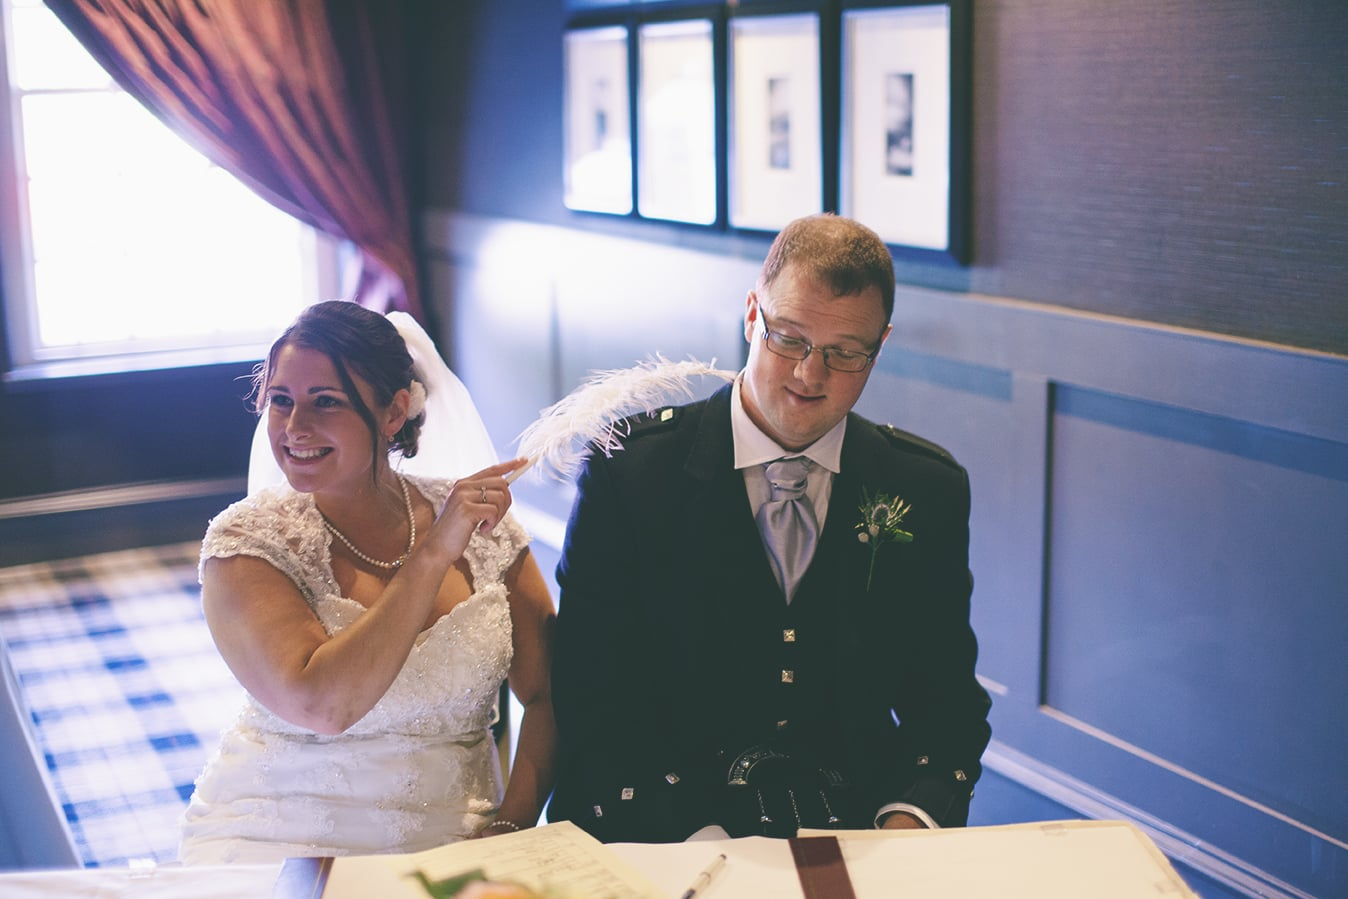 relaxed_wedding_photography_scotland (75).jpg